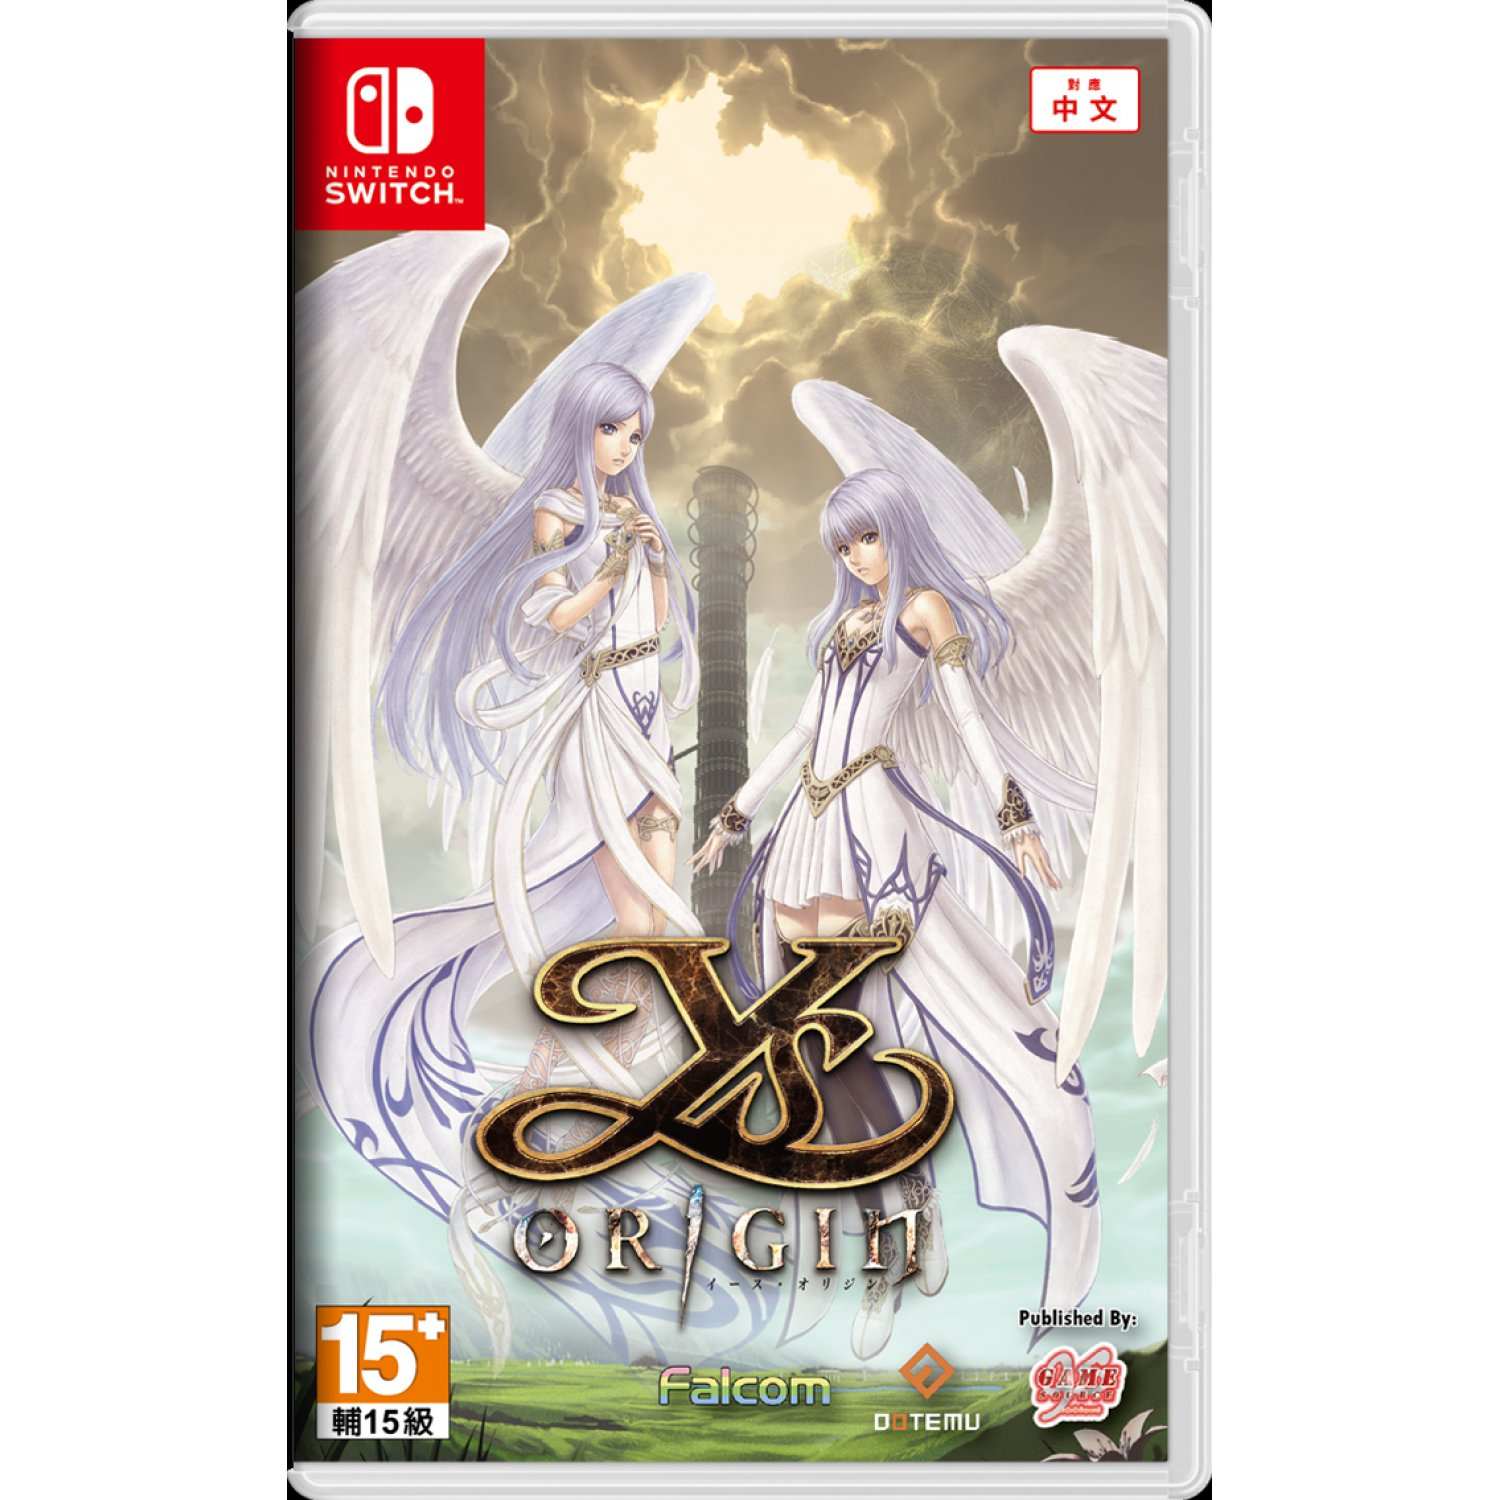 Ys Origin, Ys, Nintendo Switch, Switch, features, gameplay, price, pre-order, physical, English, Asia, multi-language, Game Source Entertainment, Falcom